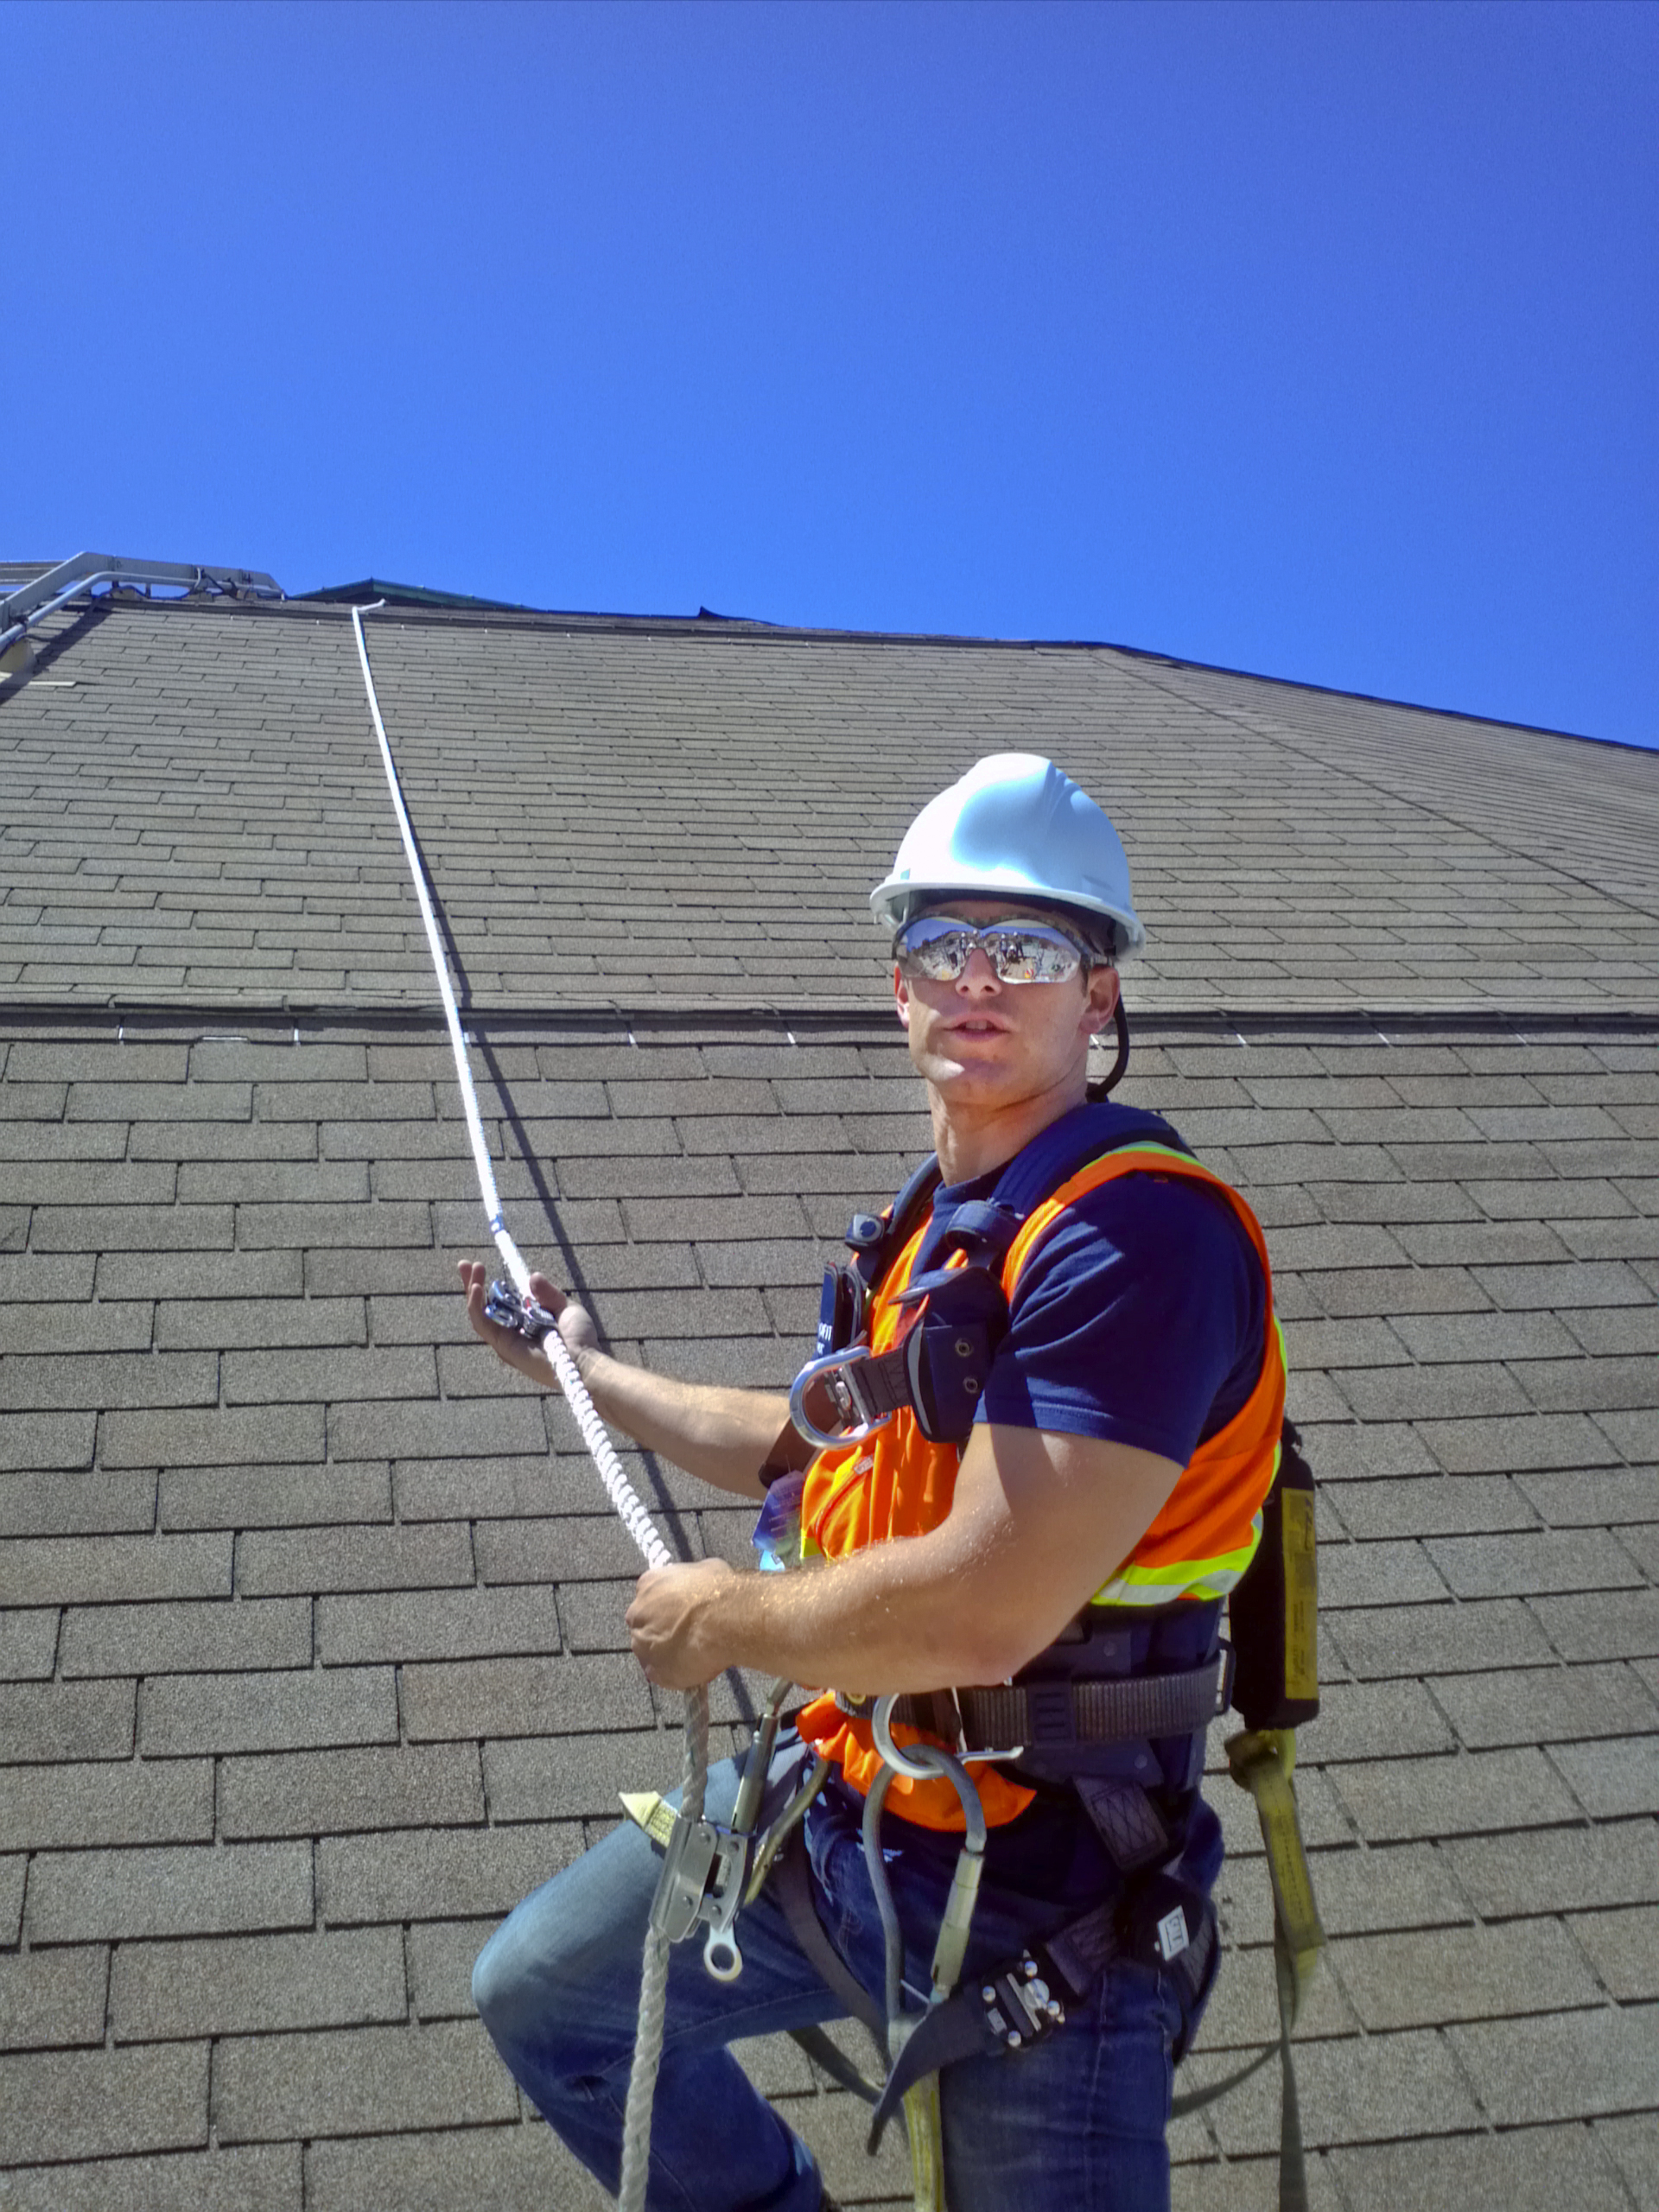 Stock Up On Fall Protection Equipment